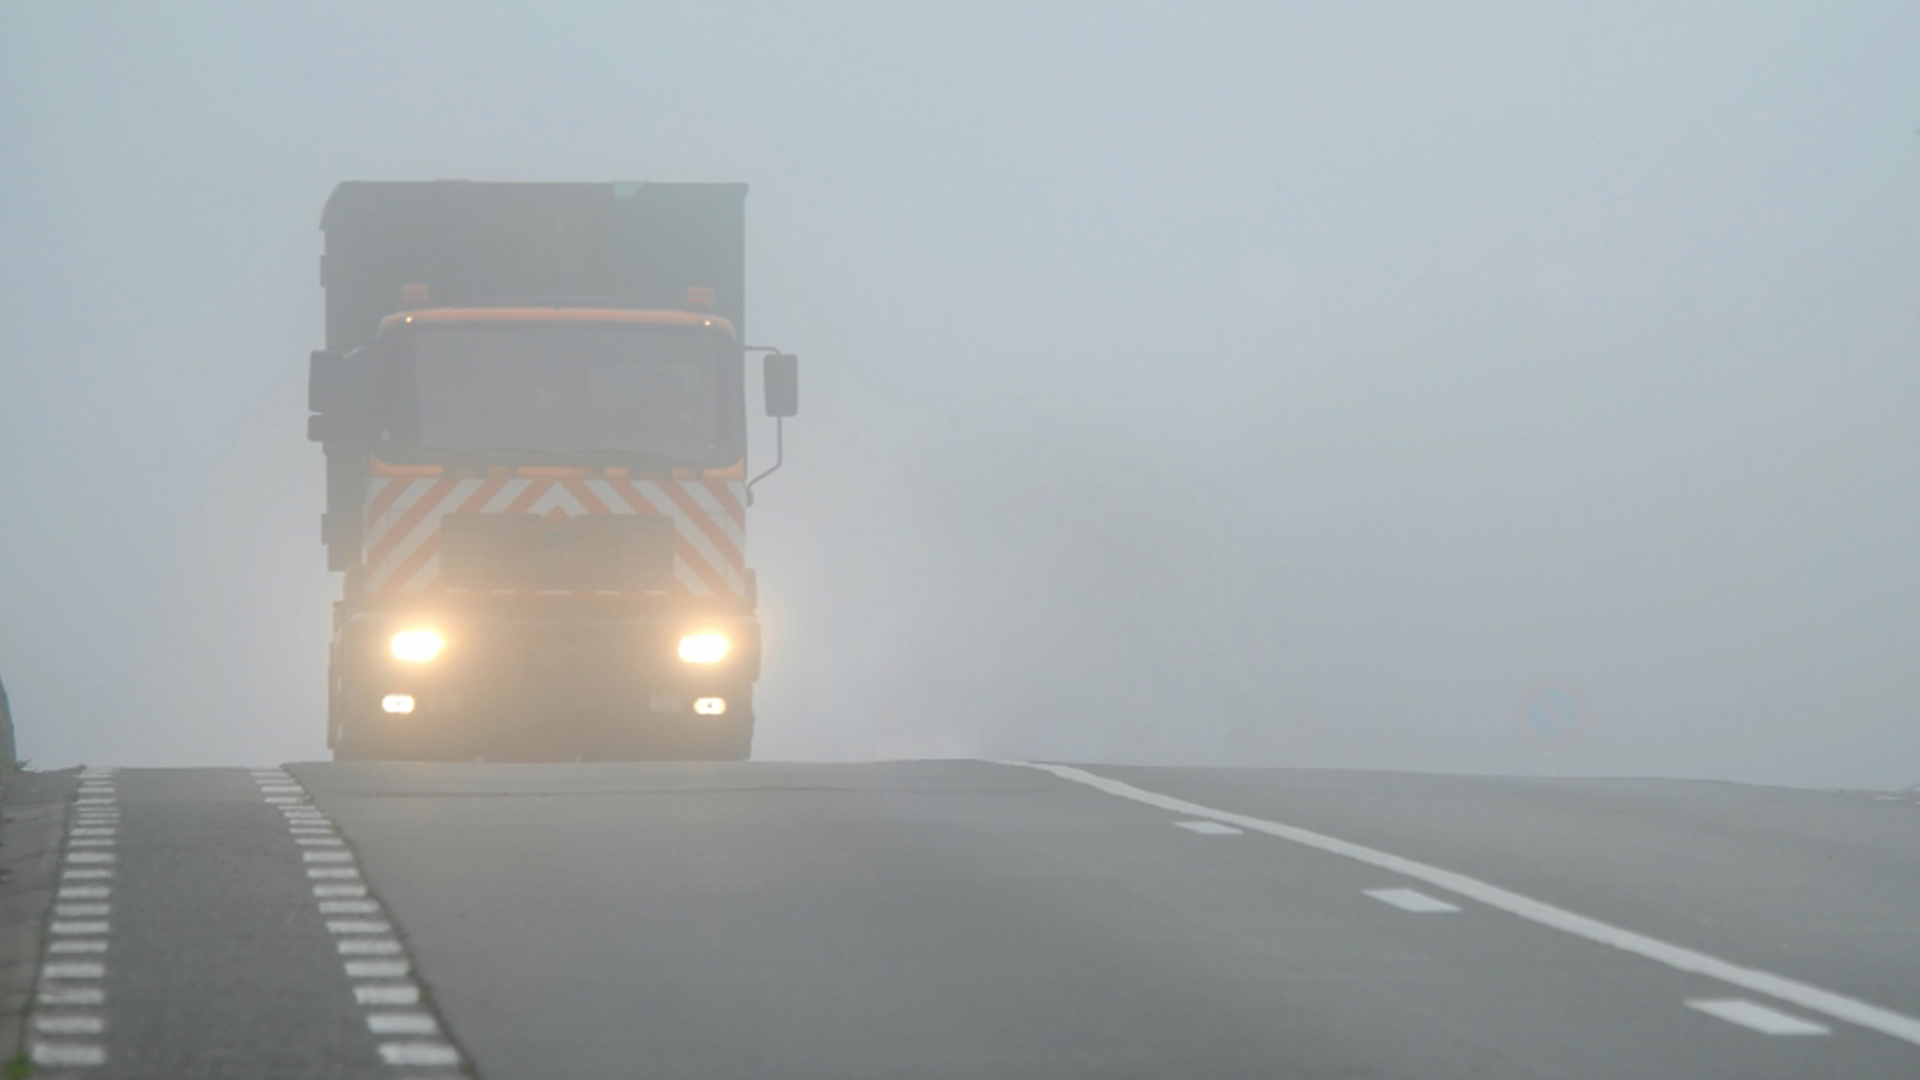 How to Improve Visibility While on the Road, Part 2 of 2